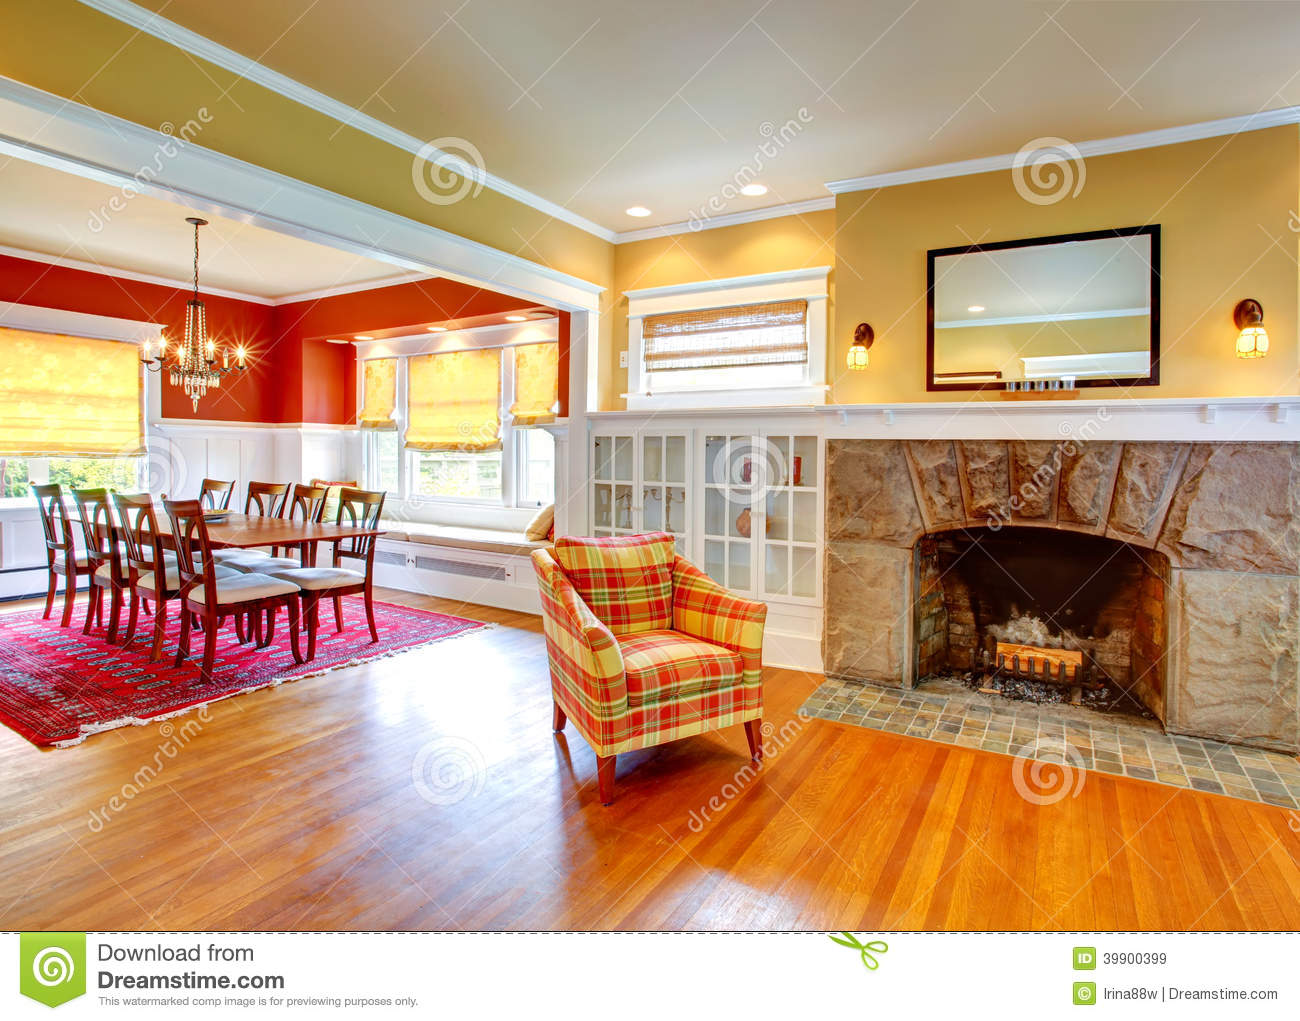 House interior.Yellow living room and contrast red dining area